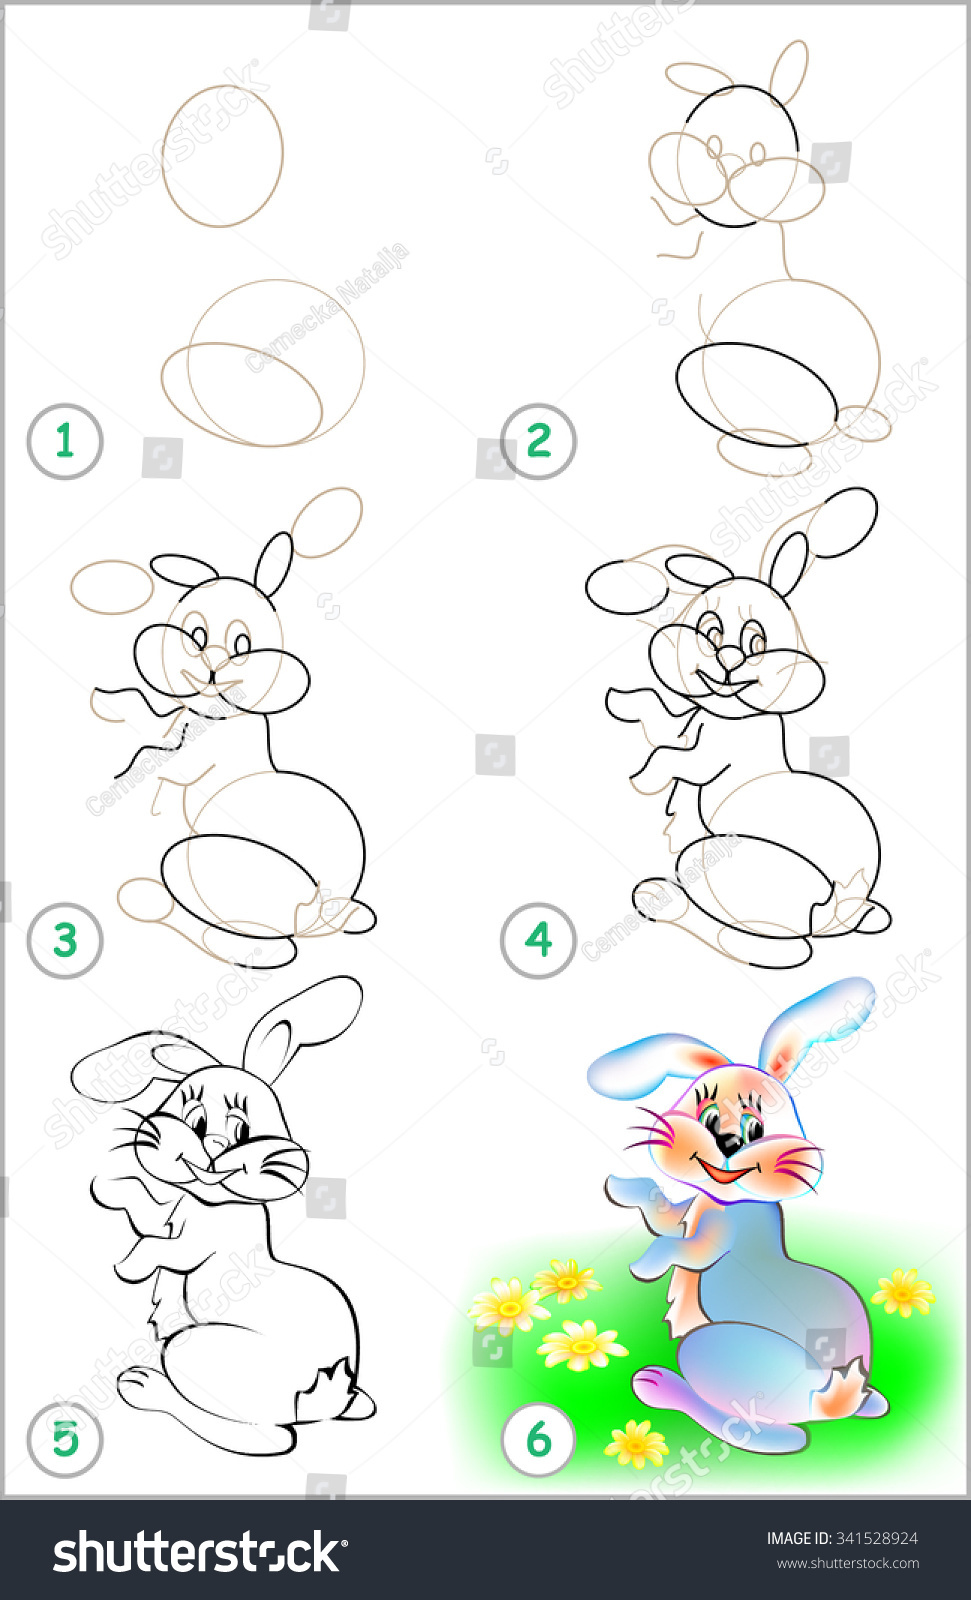 how to draw a jack rabbit step by step